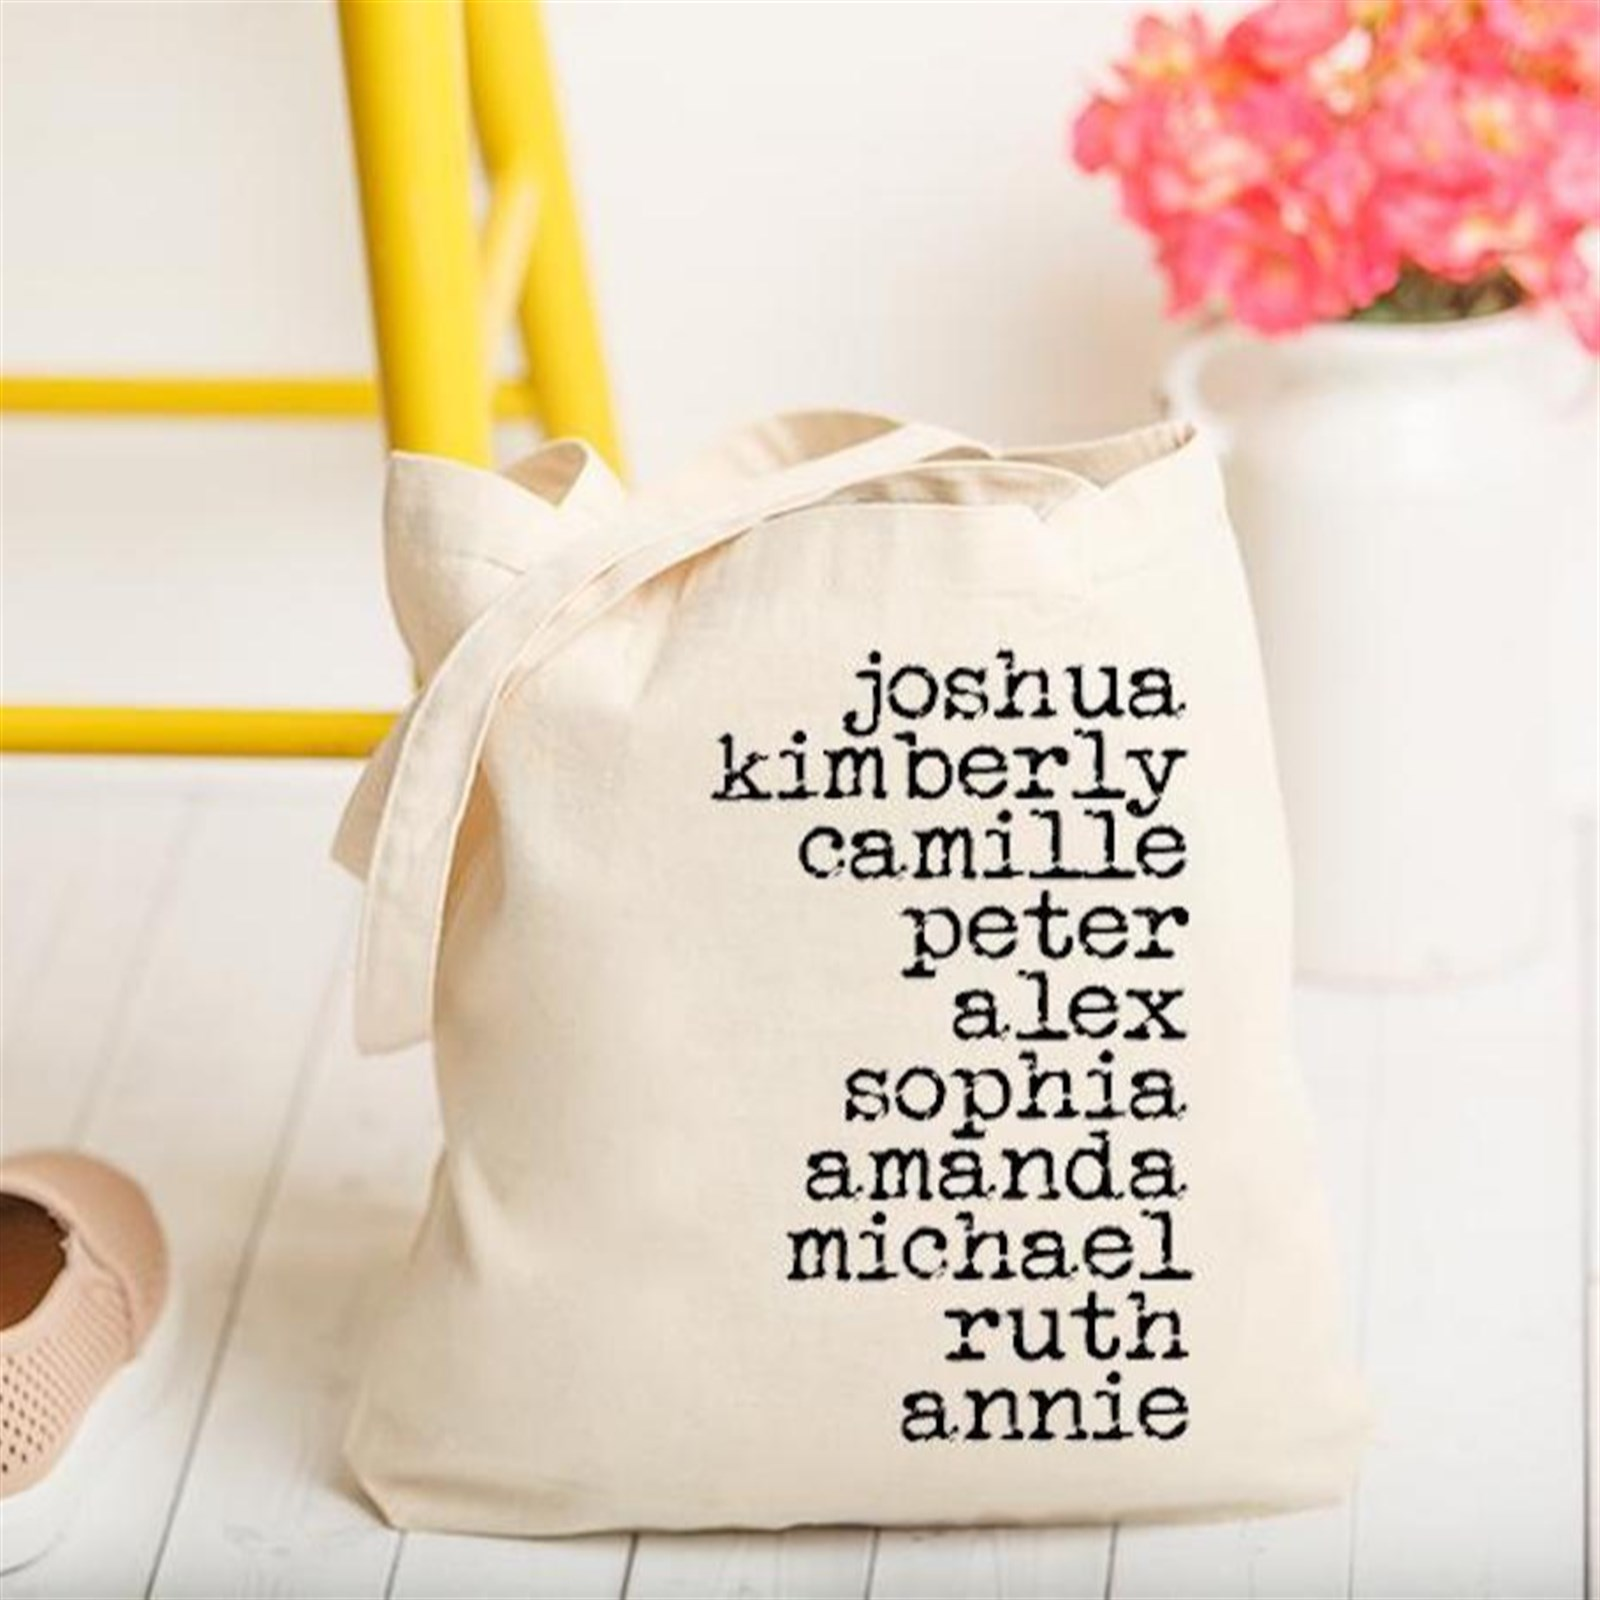 Personalized Family Name Tote Bags Only $12.99 w/ Free Shipping